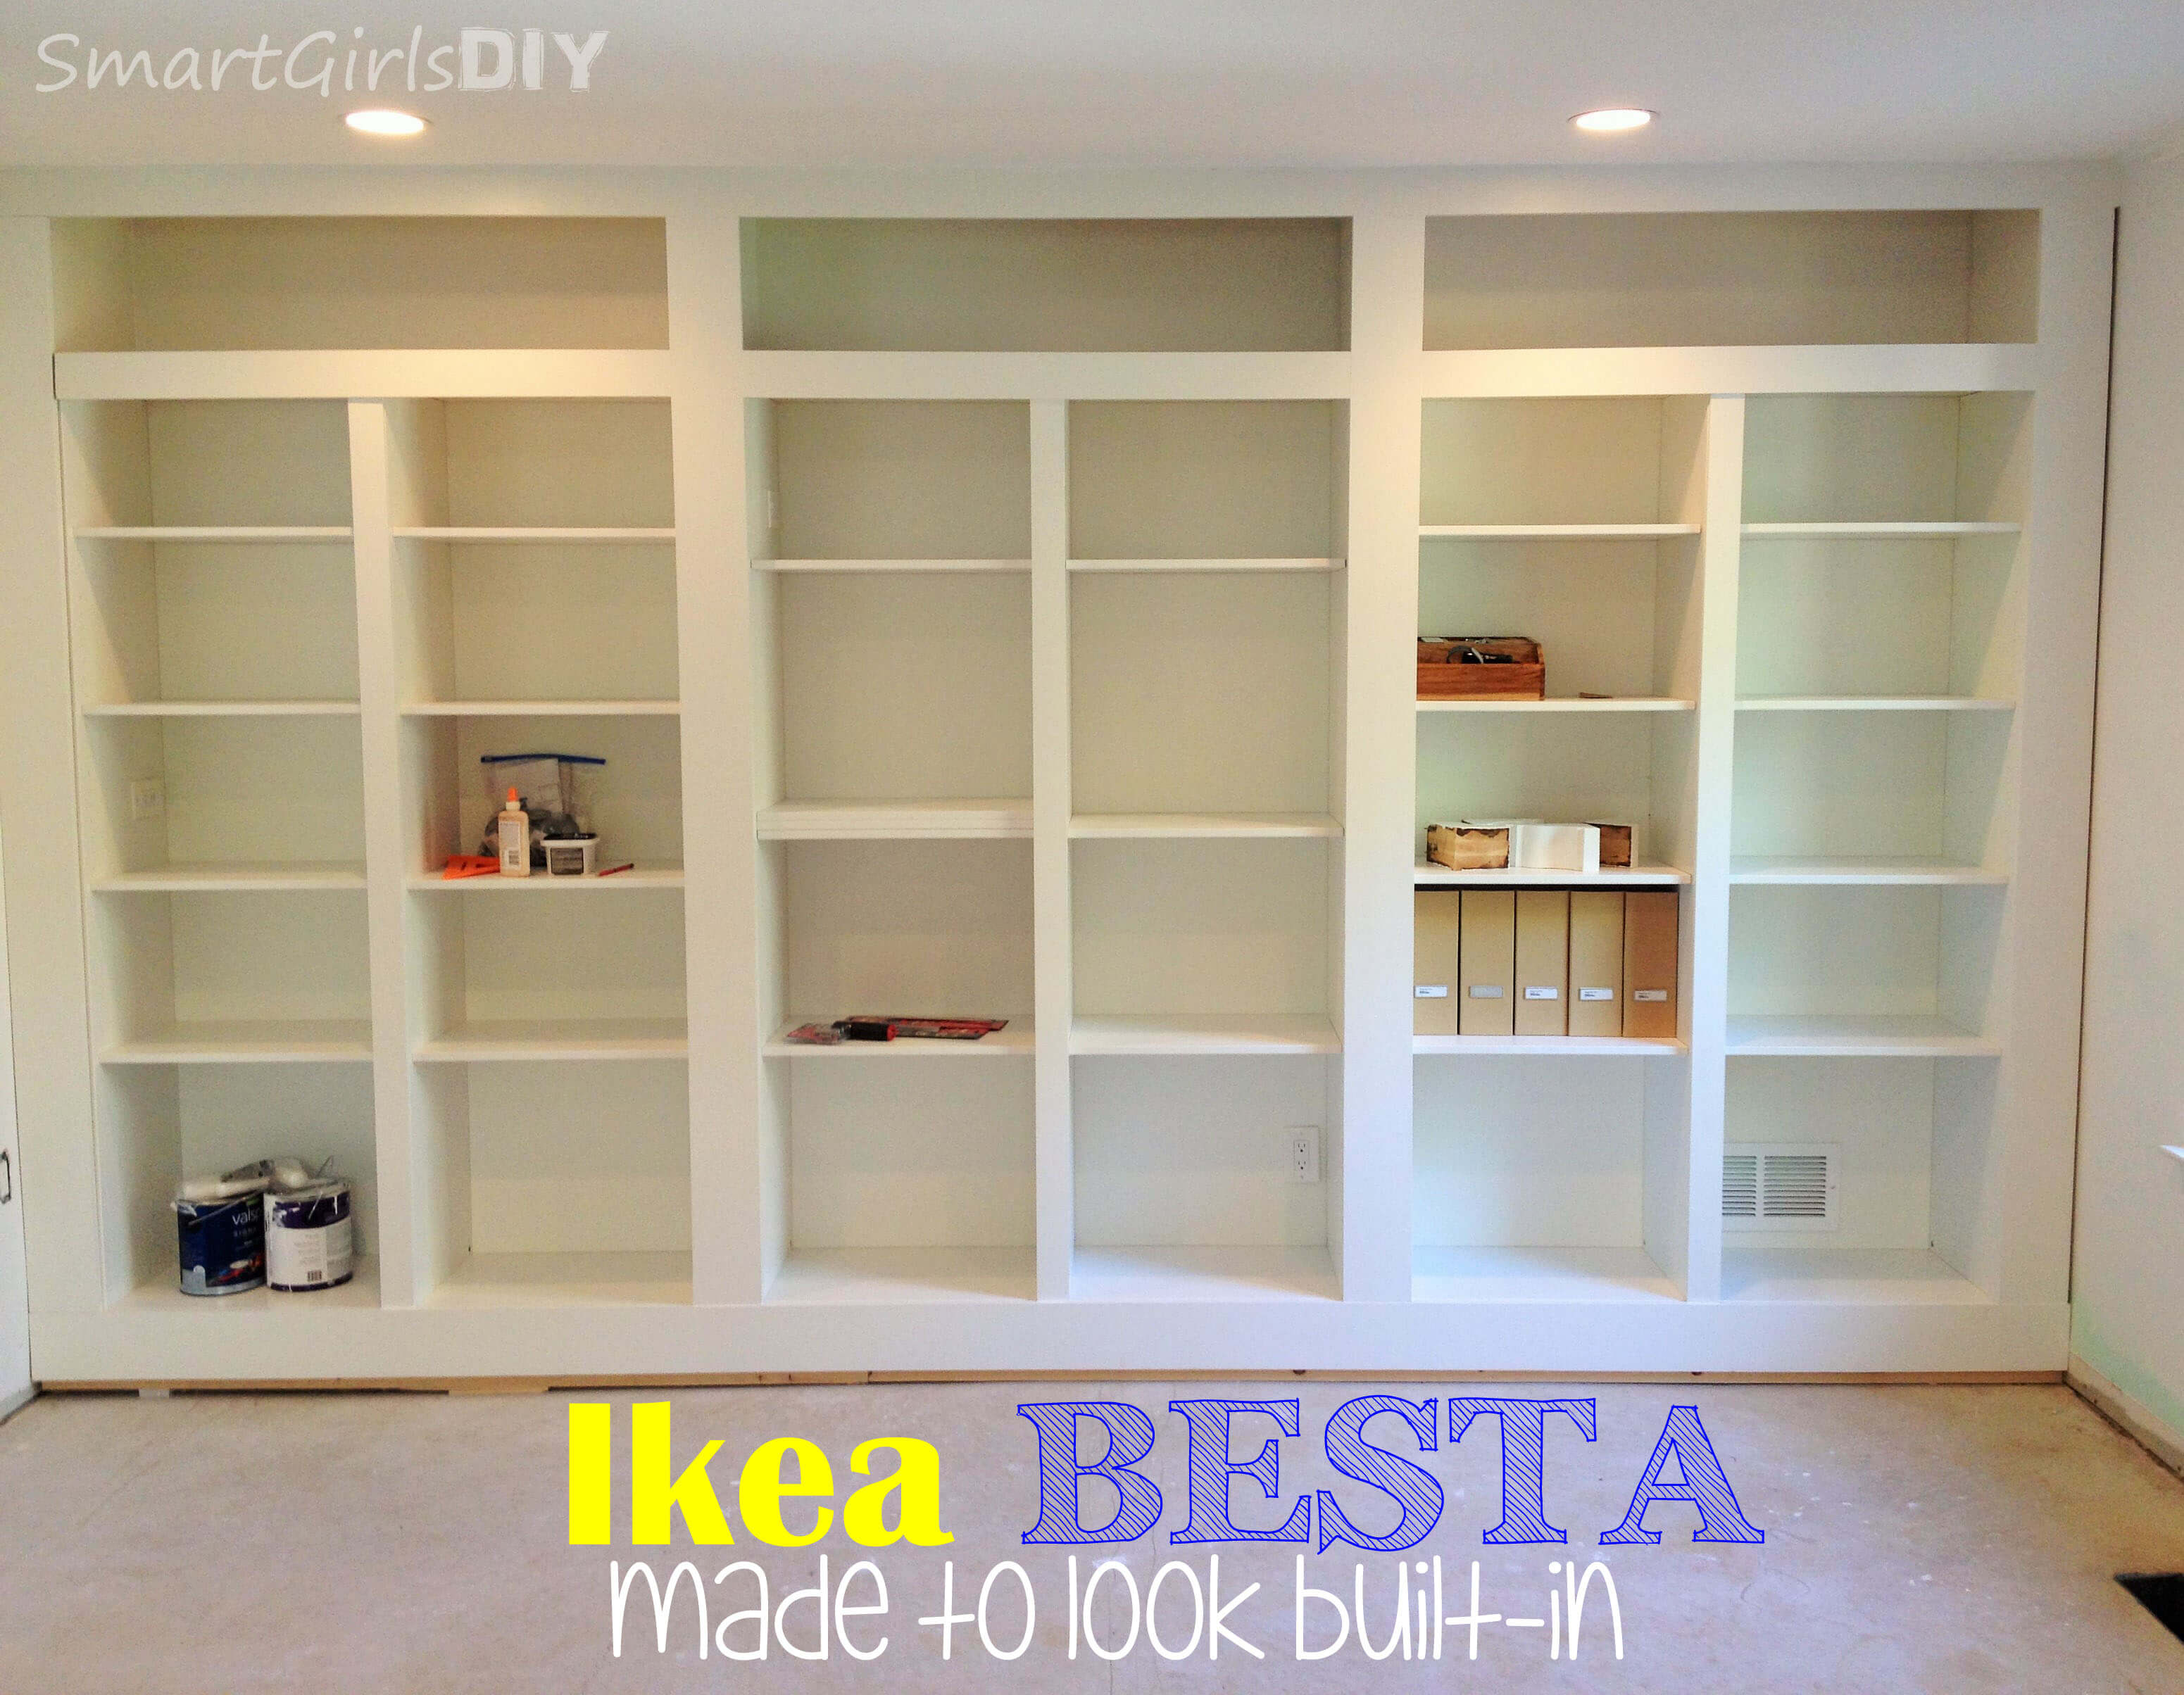 ikea besta made to look built in - Ikea Built In Bookshelves